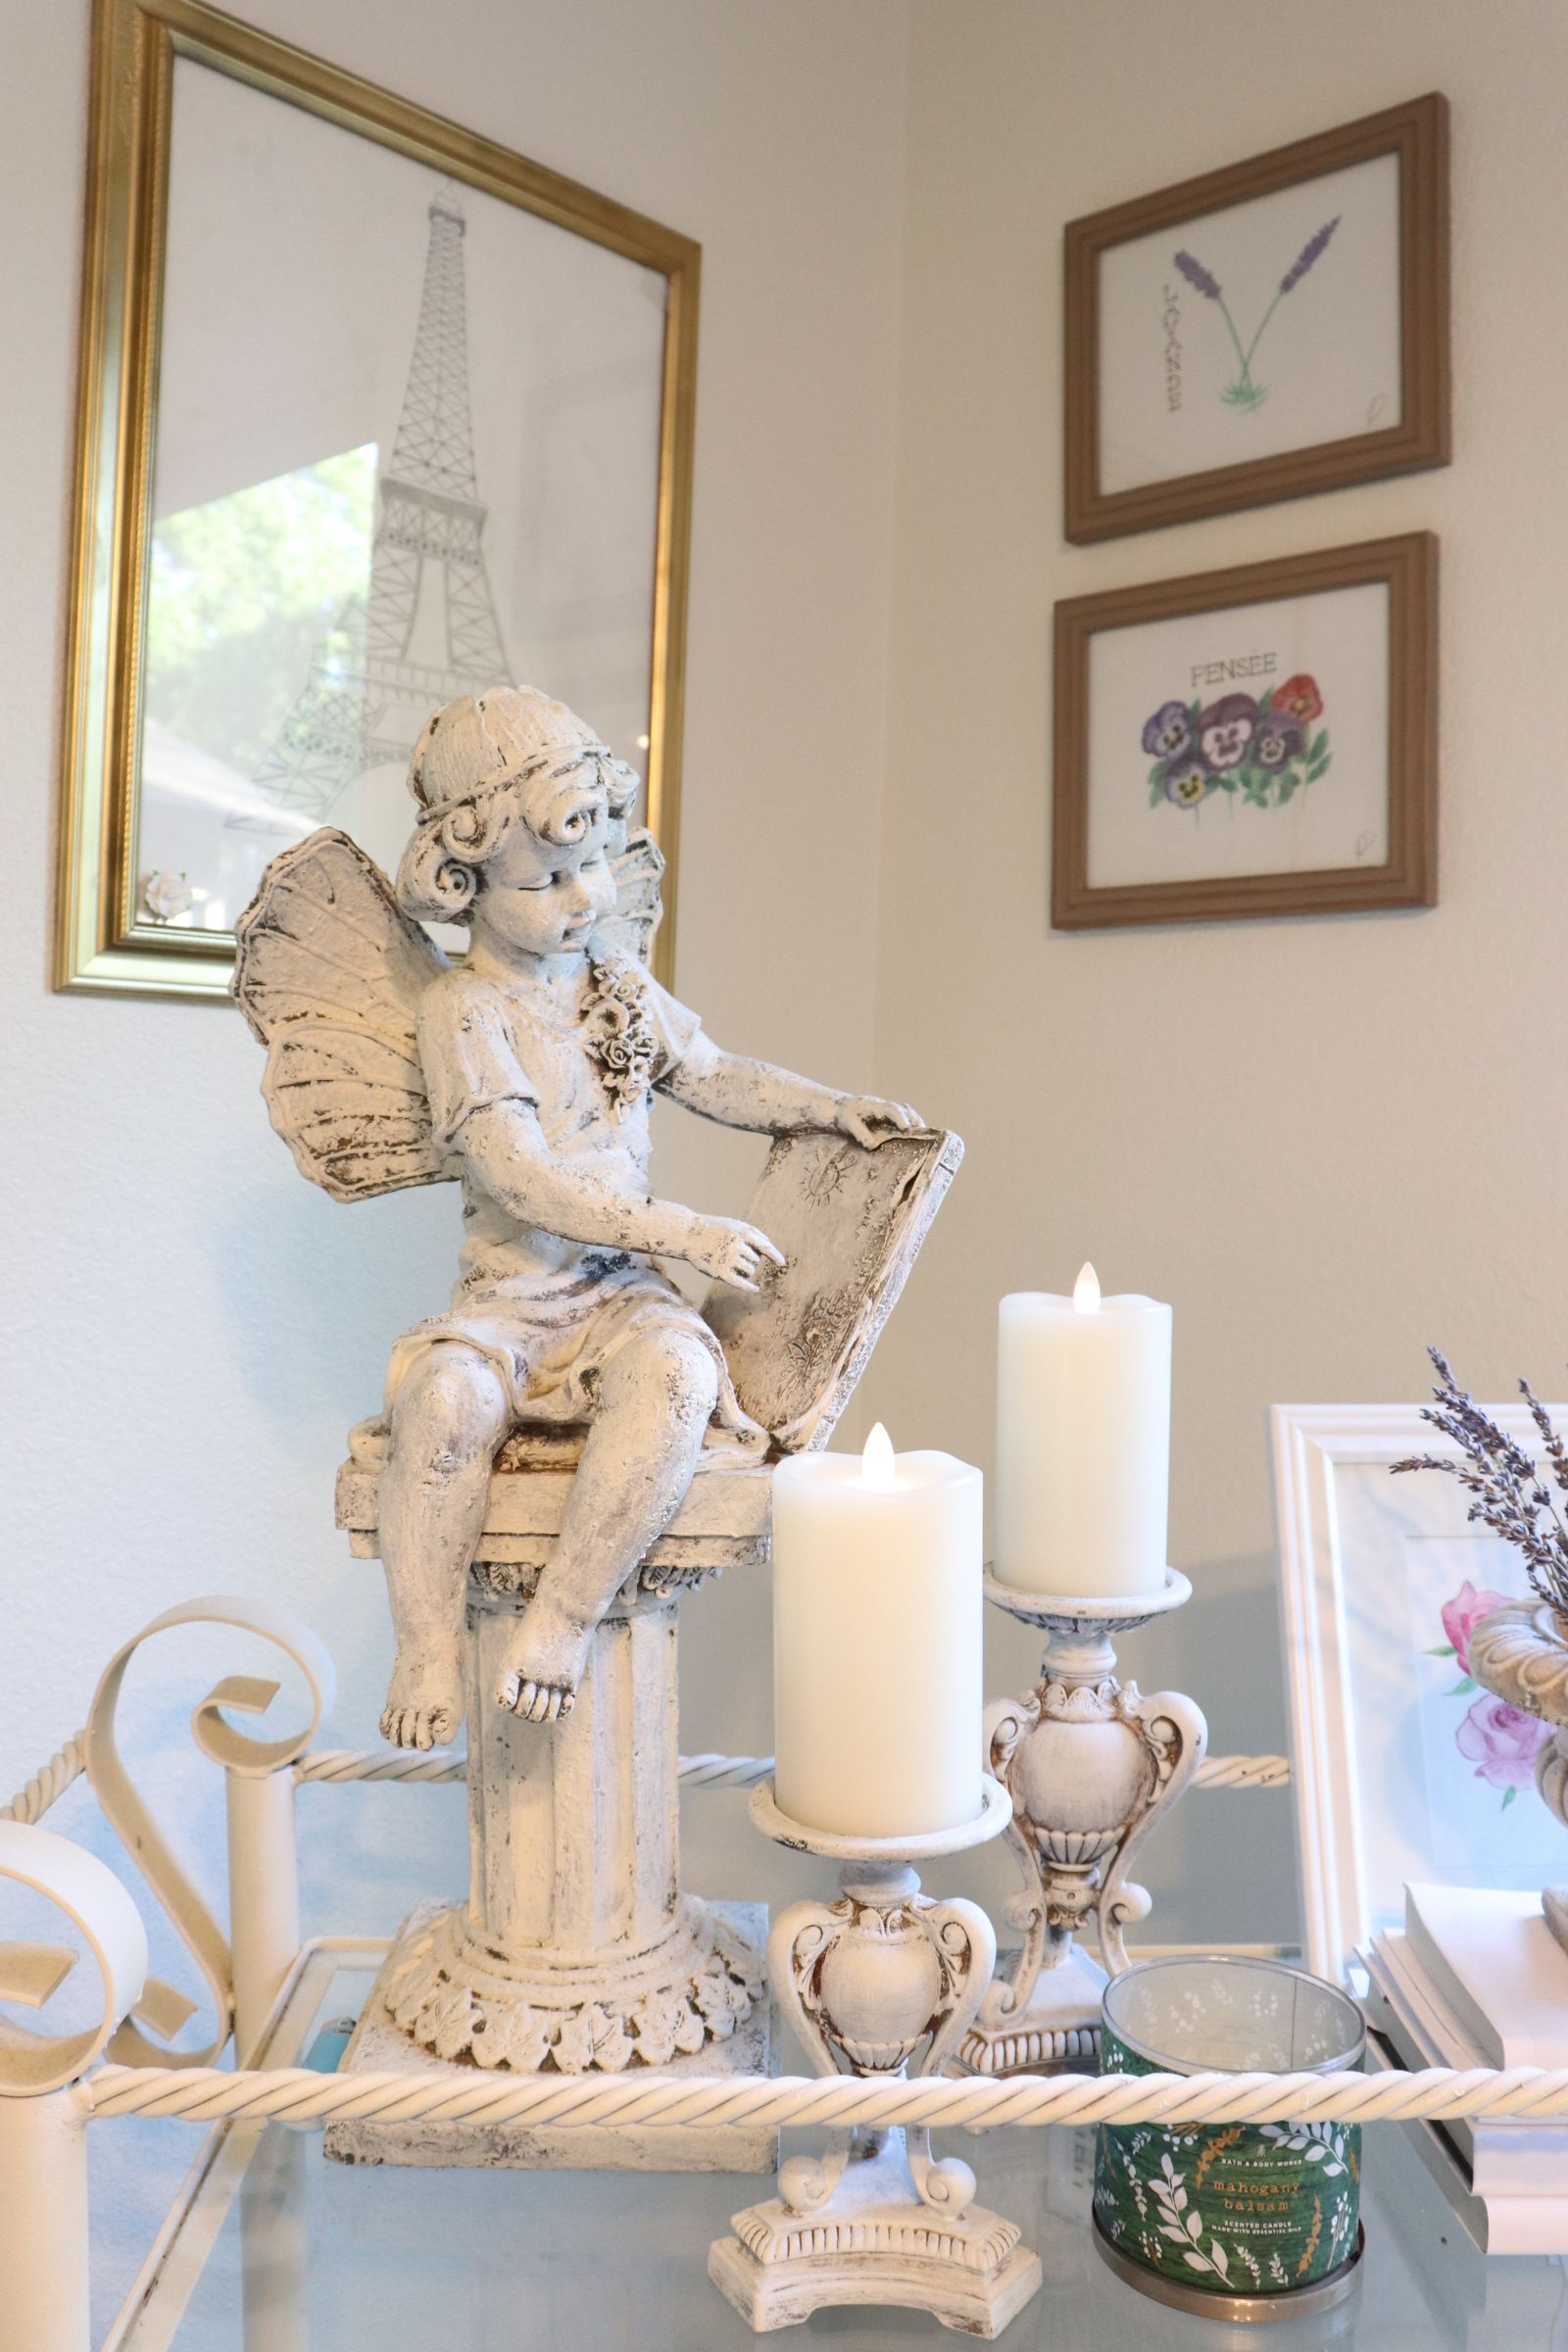 Statuary doesn't only belong outside! A small statue used as a home decoration is a simple and creative way to bring some French country feeling into your home! #frenchcountry #frenchcountryliving #frenchinspiredliving #frenchlife #francophile #frenchcountrystyle #frenchcountrydecor